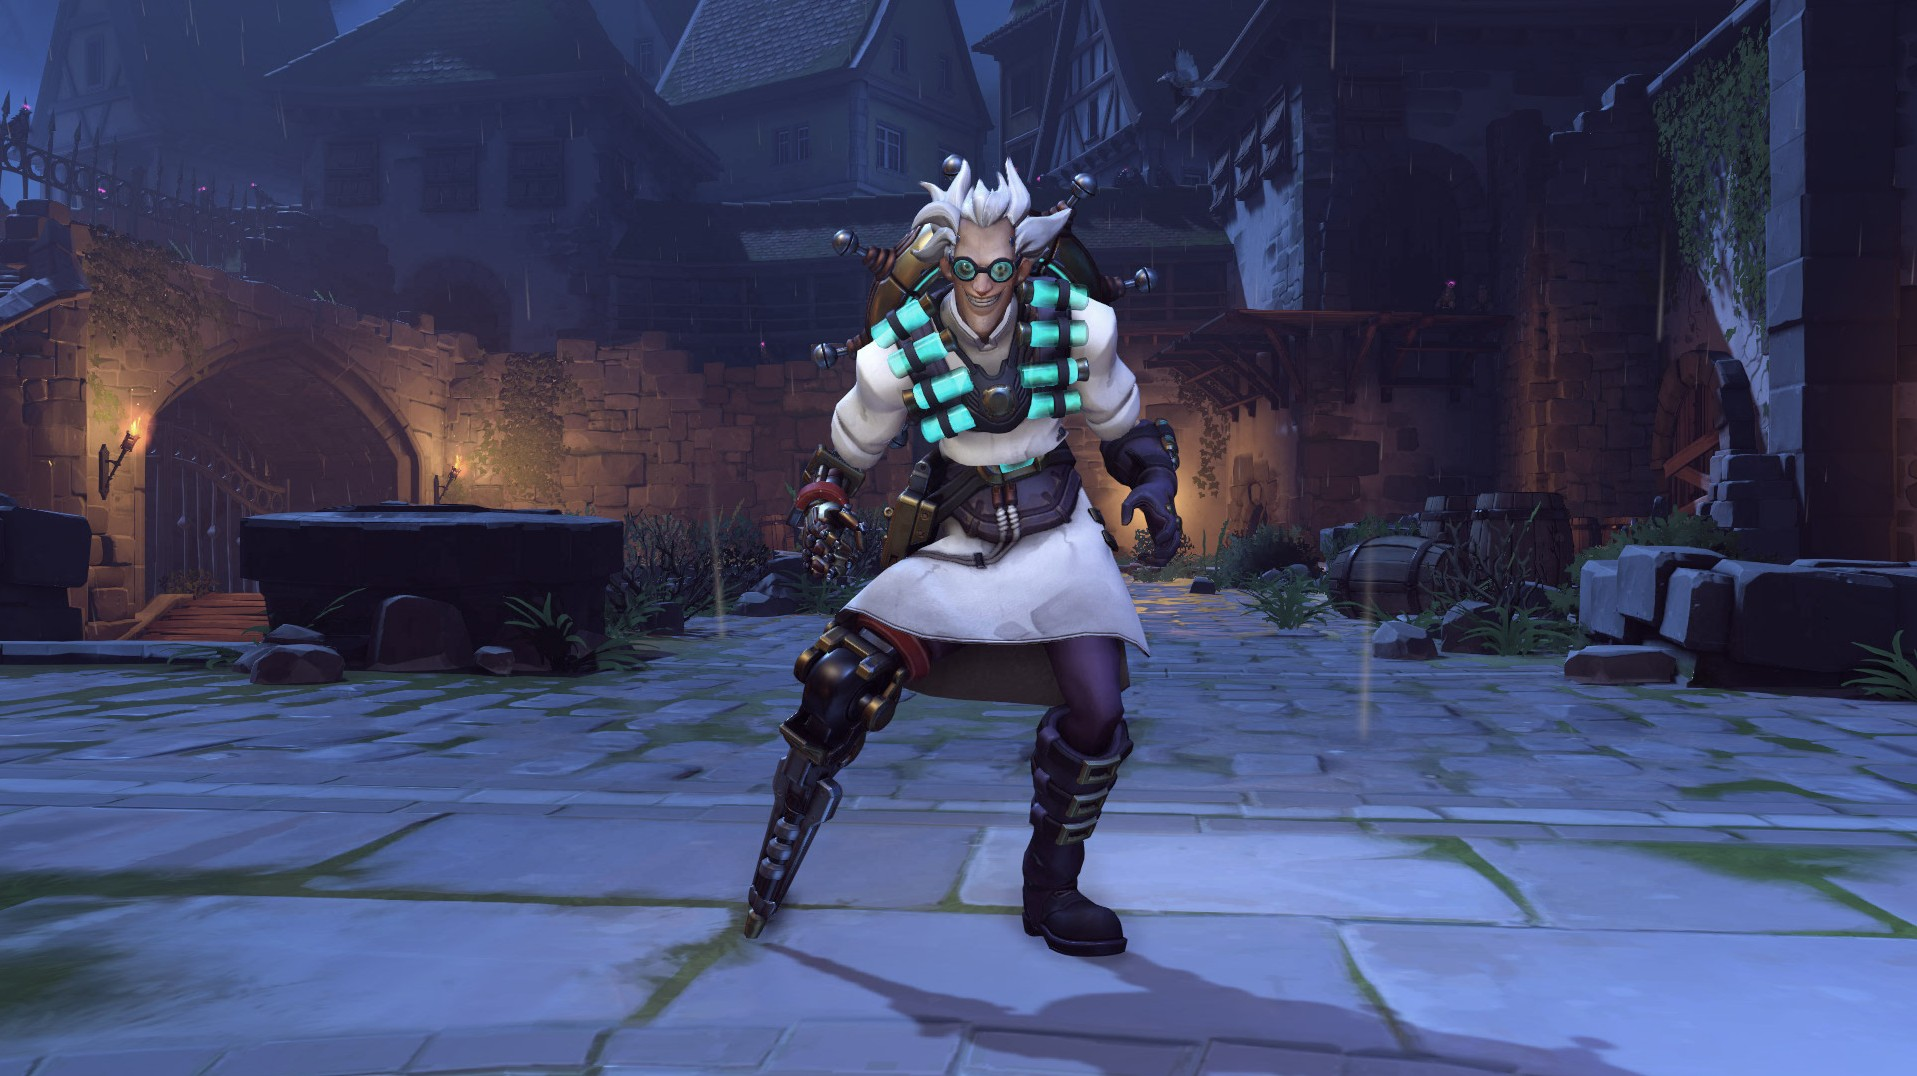 New Skins Costumes